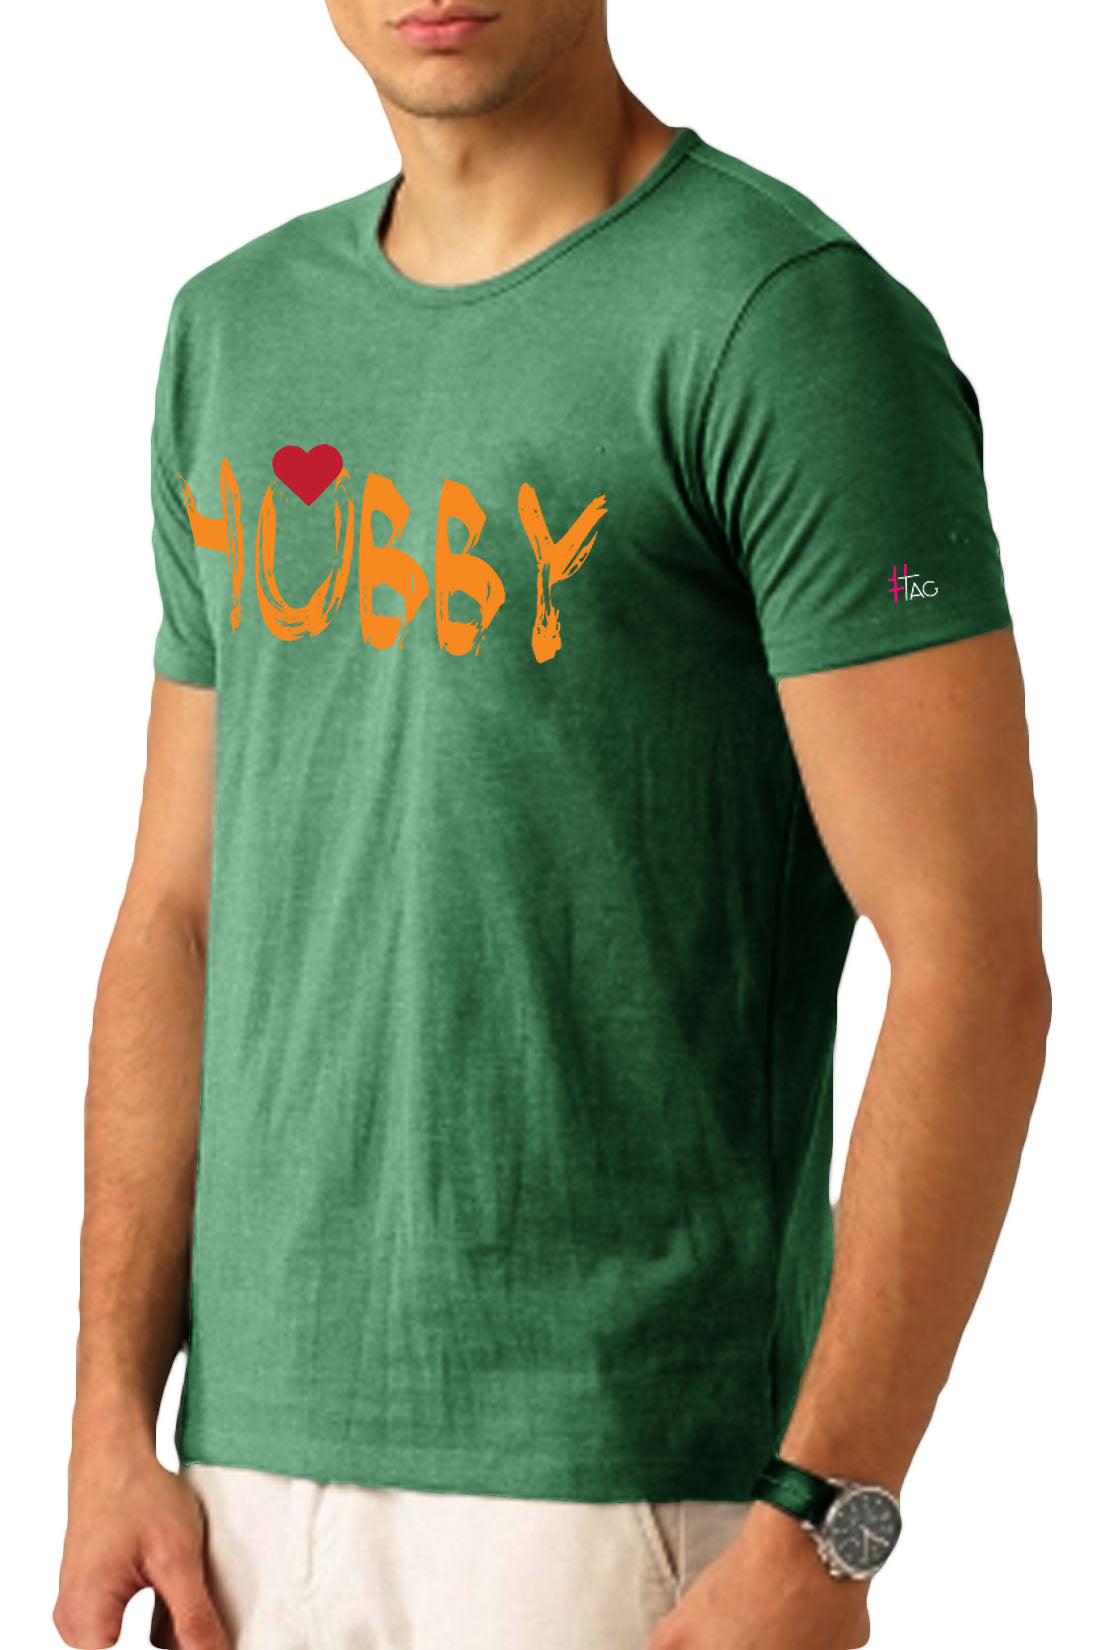 Funny Quotes T Shirts Online Shopping India